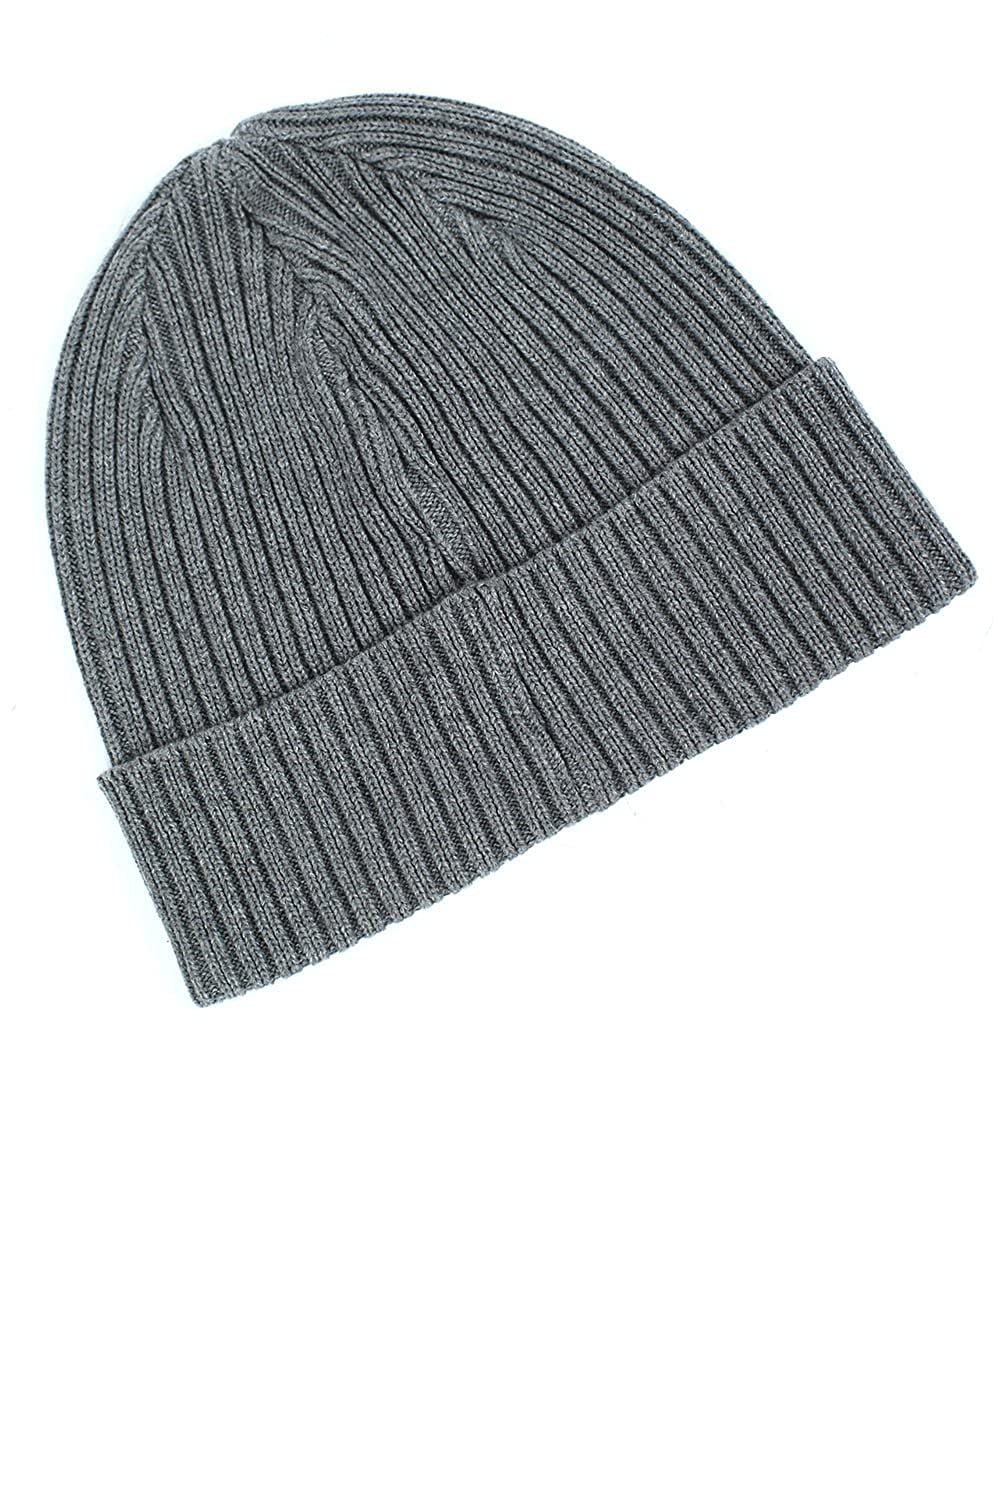 ad69694766ade 883 POLICE Respa Men s Grey Beanie Hat  Amazon.co.uk  Clothing